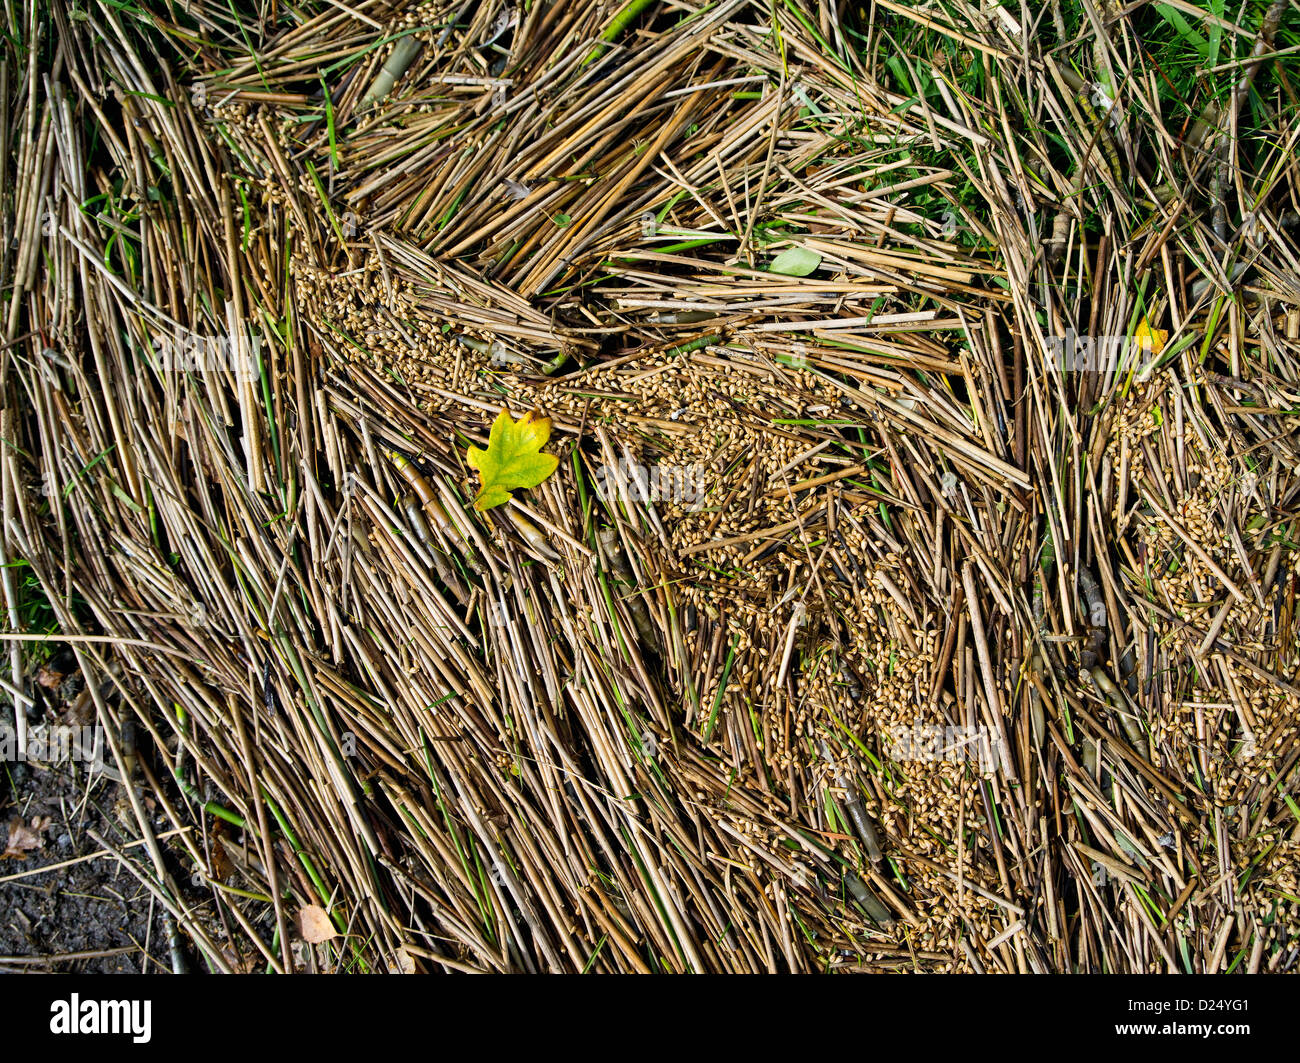 Reeds and other flotsam on the watermark of recent flooding - Stock Image